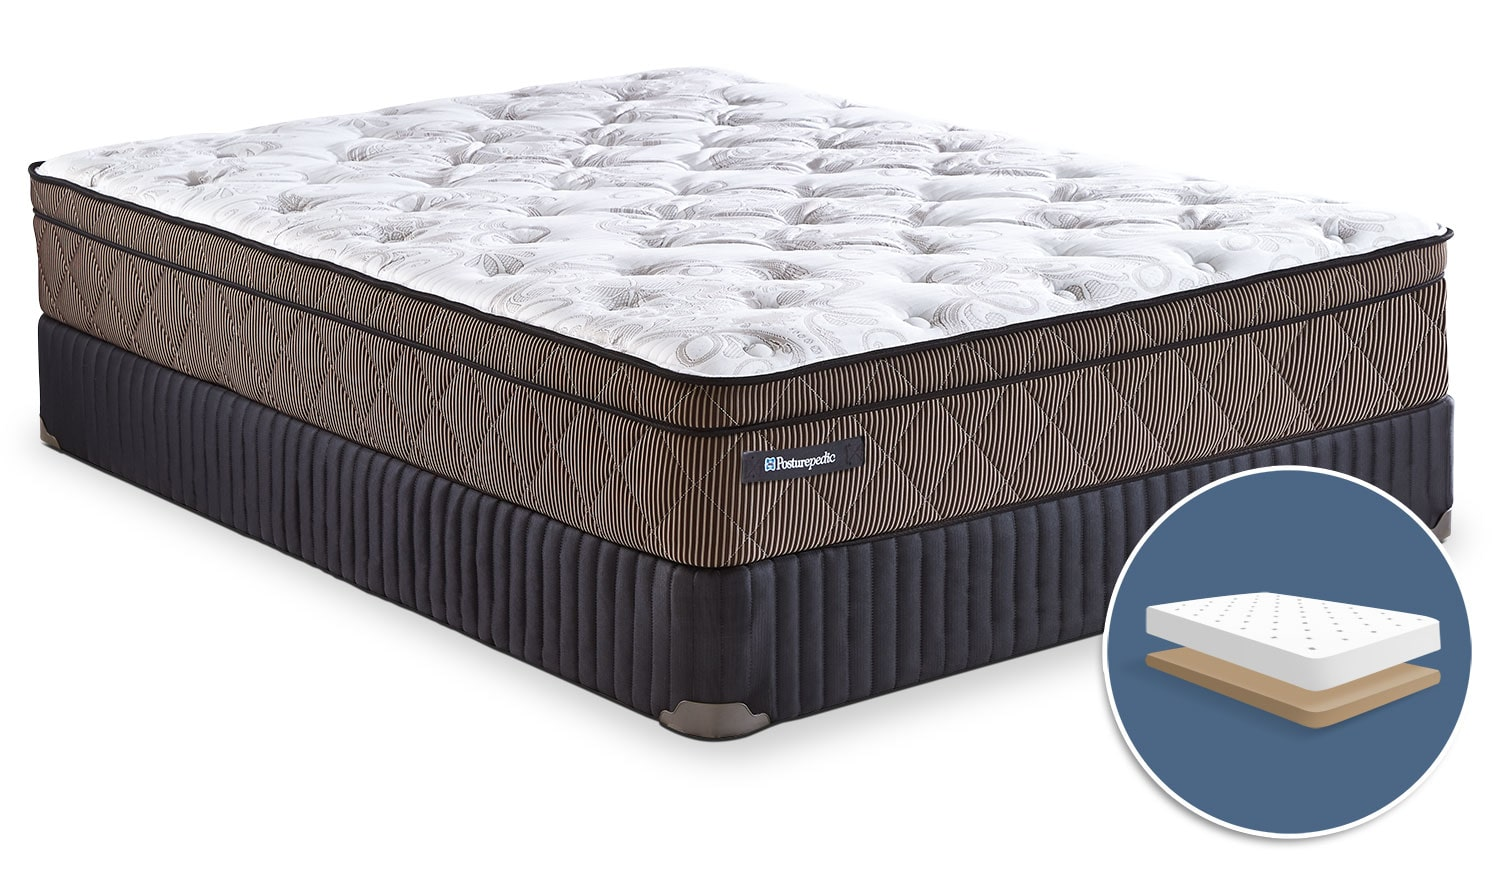 Sealy Posturepedic Crown Jewel Riverfront Euro-Top Low-Profile Twin Mattress Set